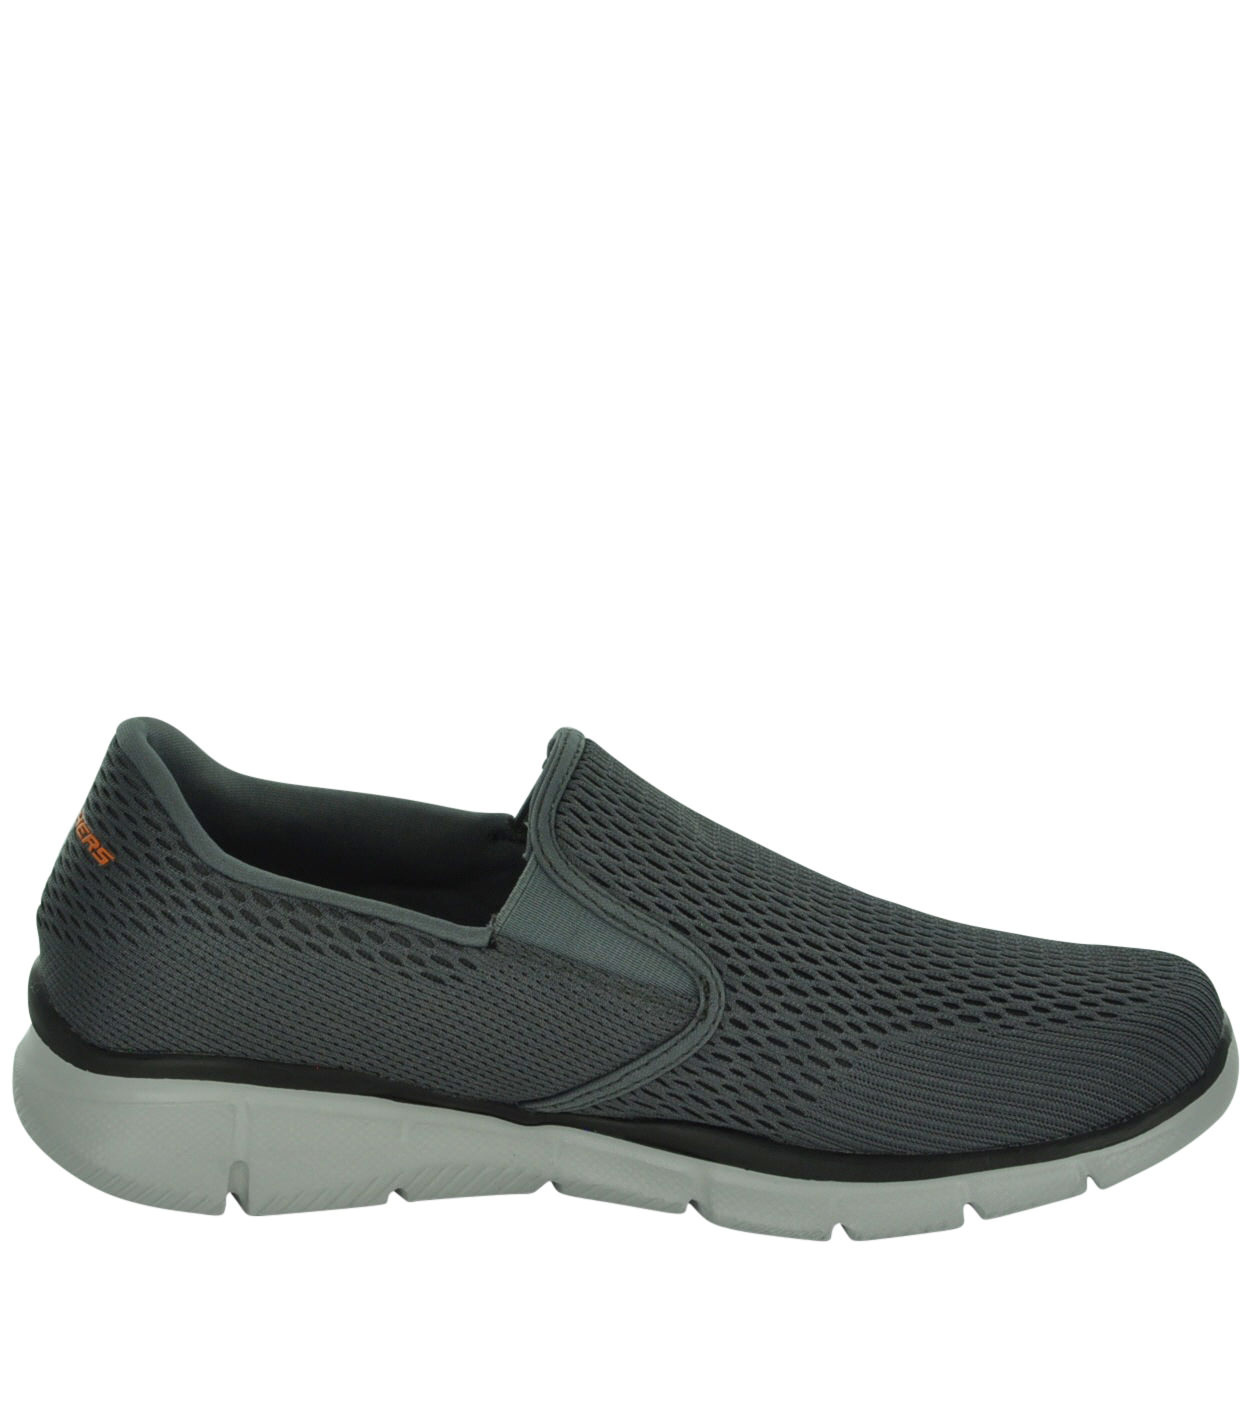 8f7cc516f329 ... Skechers Skechers Equalizer - Double Play 51509 Men s Sneakers